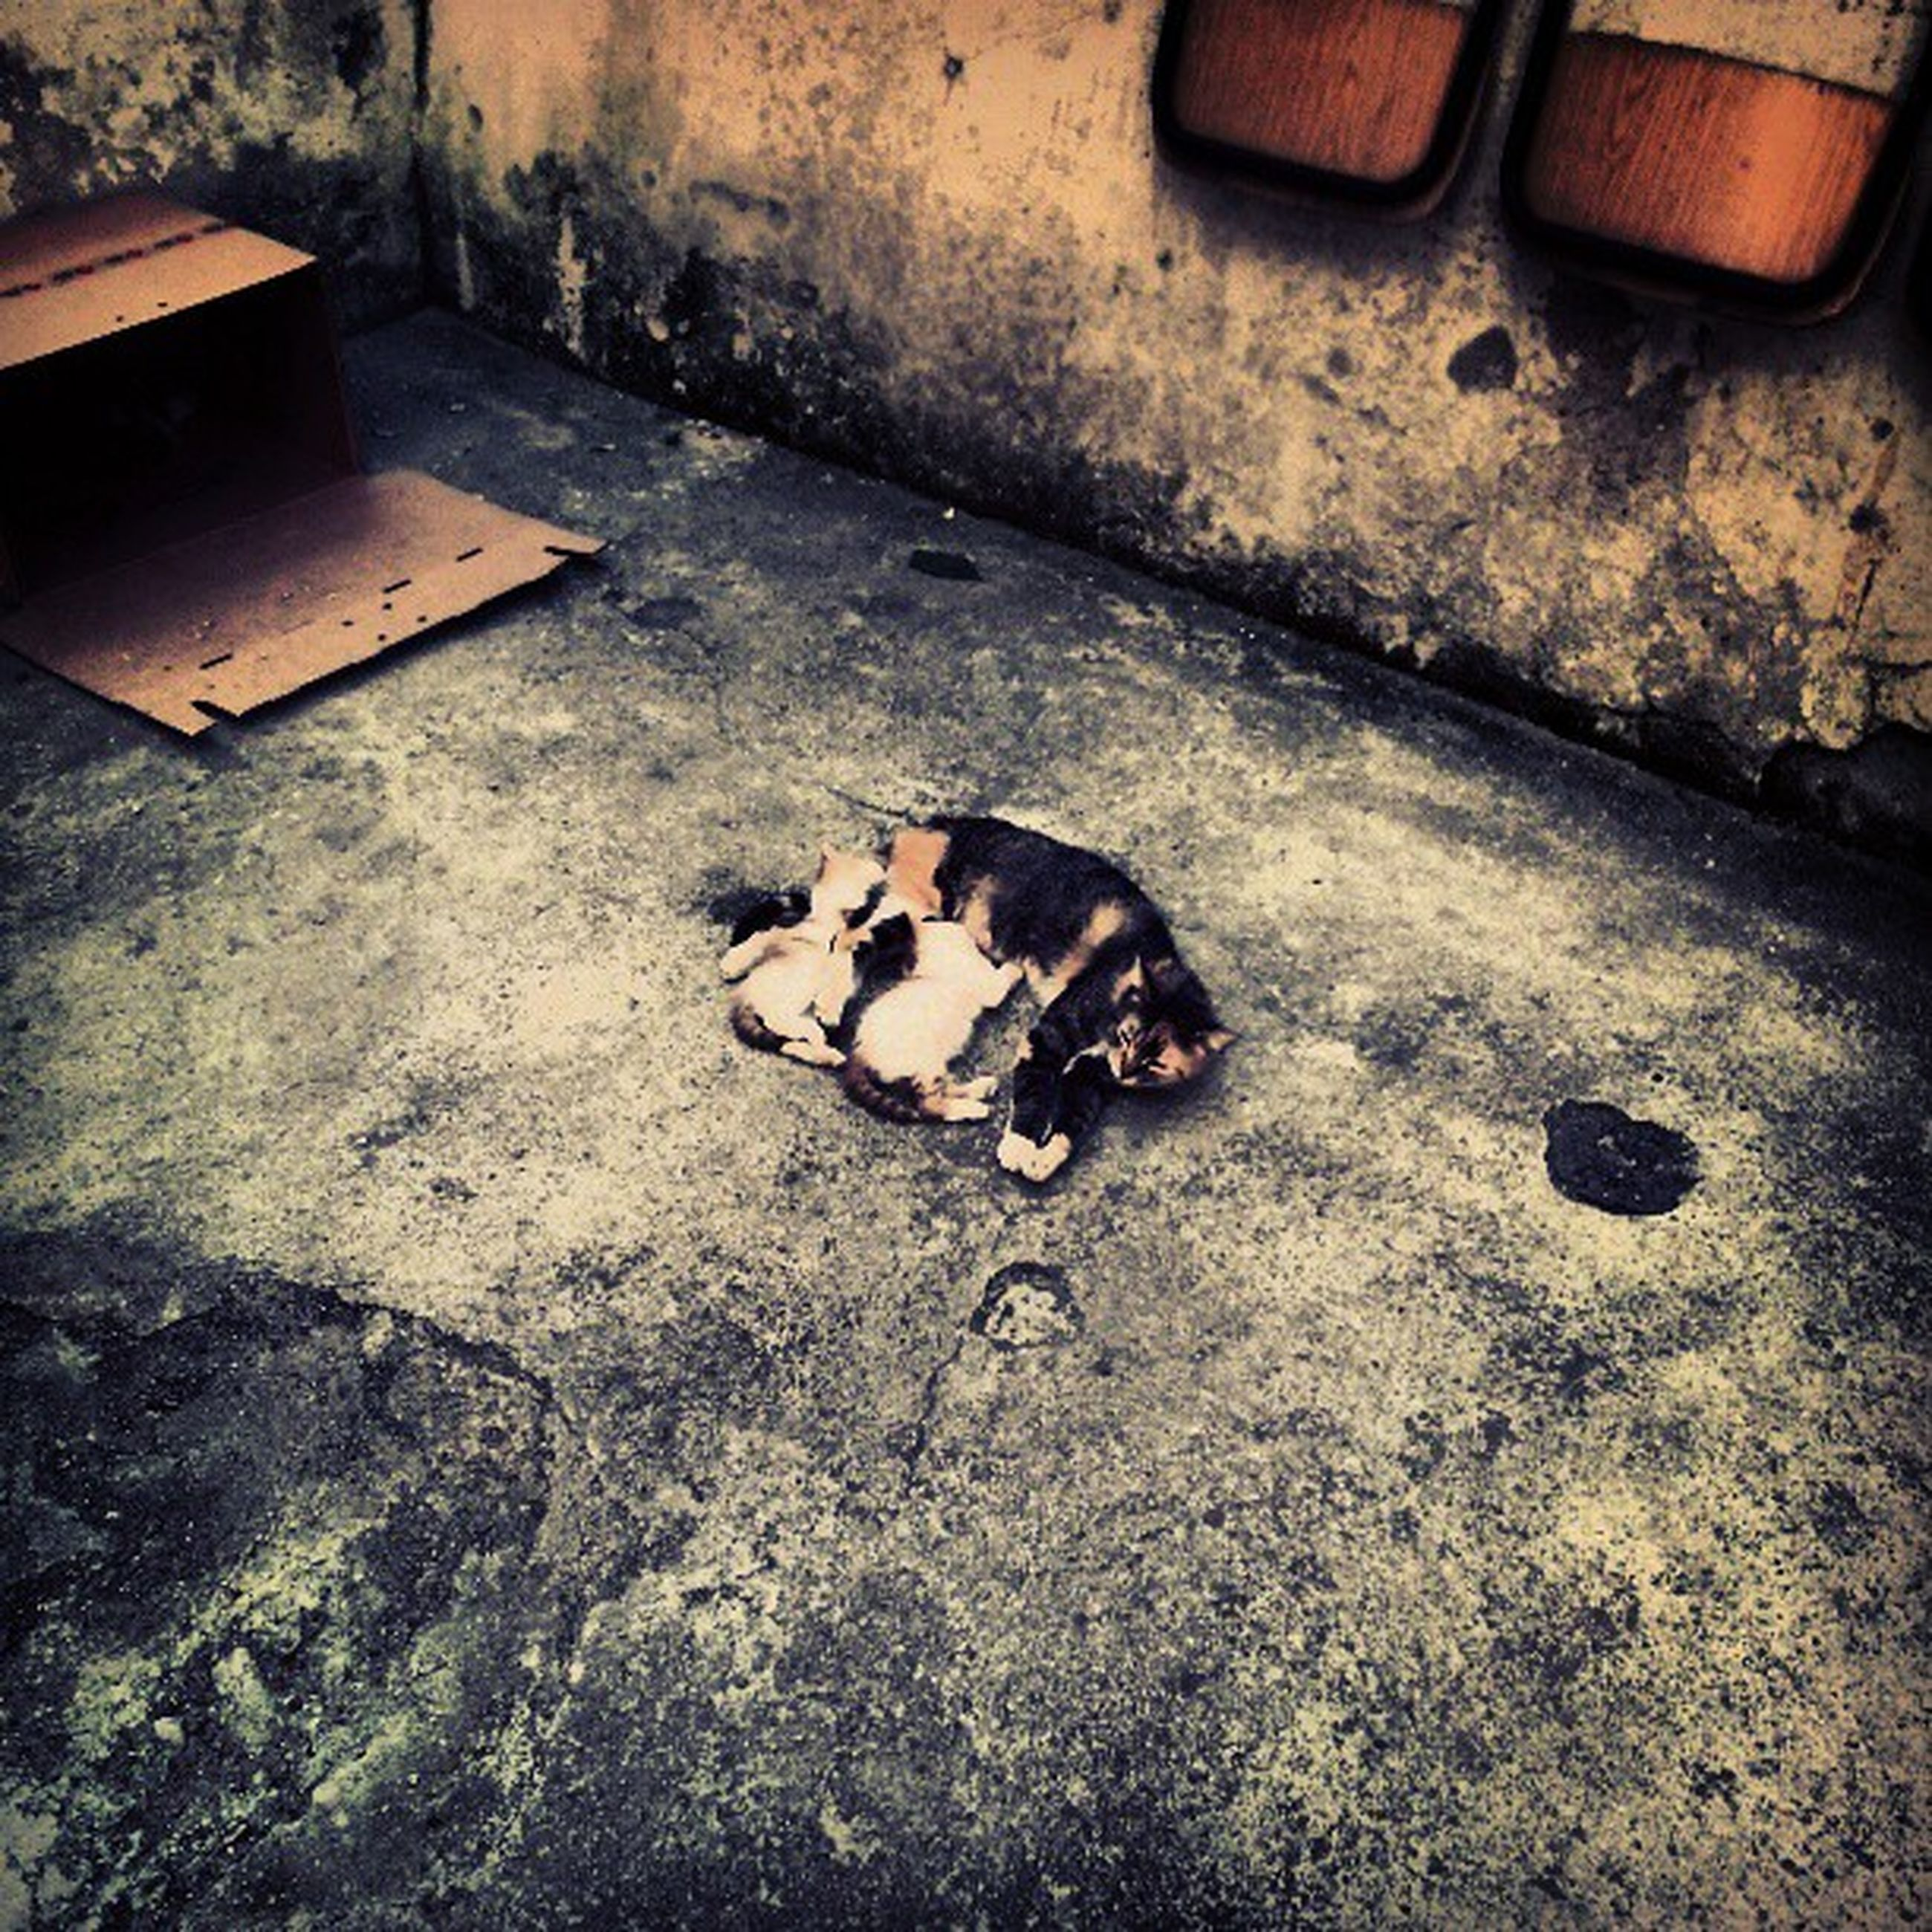 animal themes, high angle view, abandoned, domestic animals, one animal, indoors, cat, damaged, pets, no people, obsolete, domestic cat, flooring, dirty, ground, deterioration, messy, mammal, floor, run-down